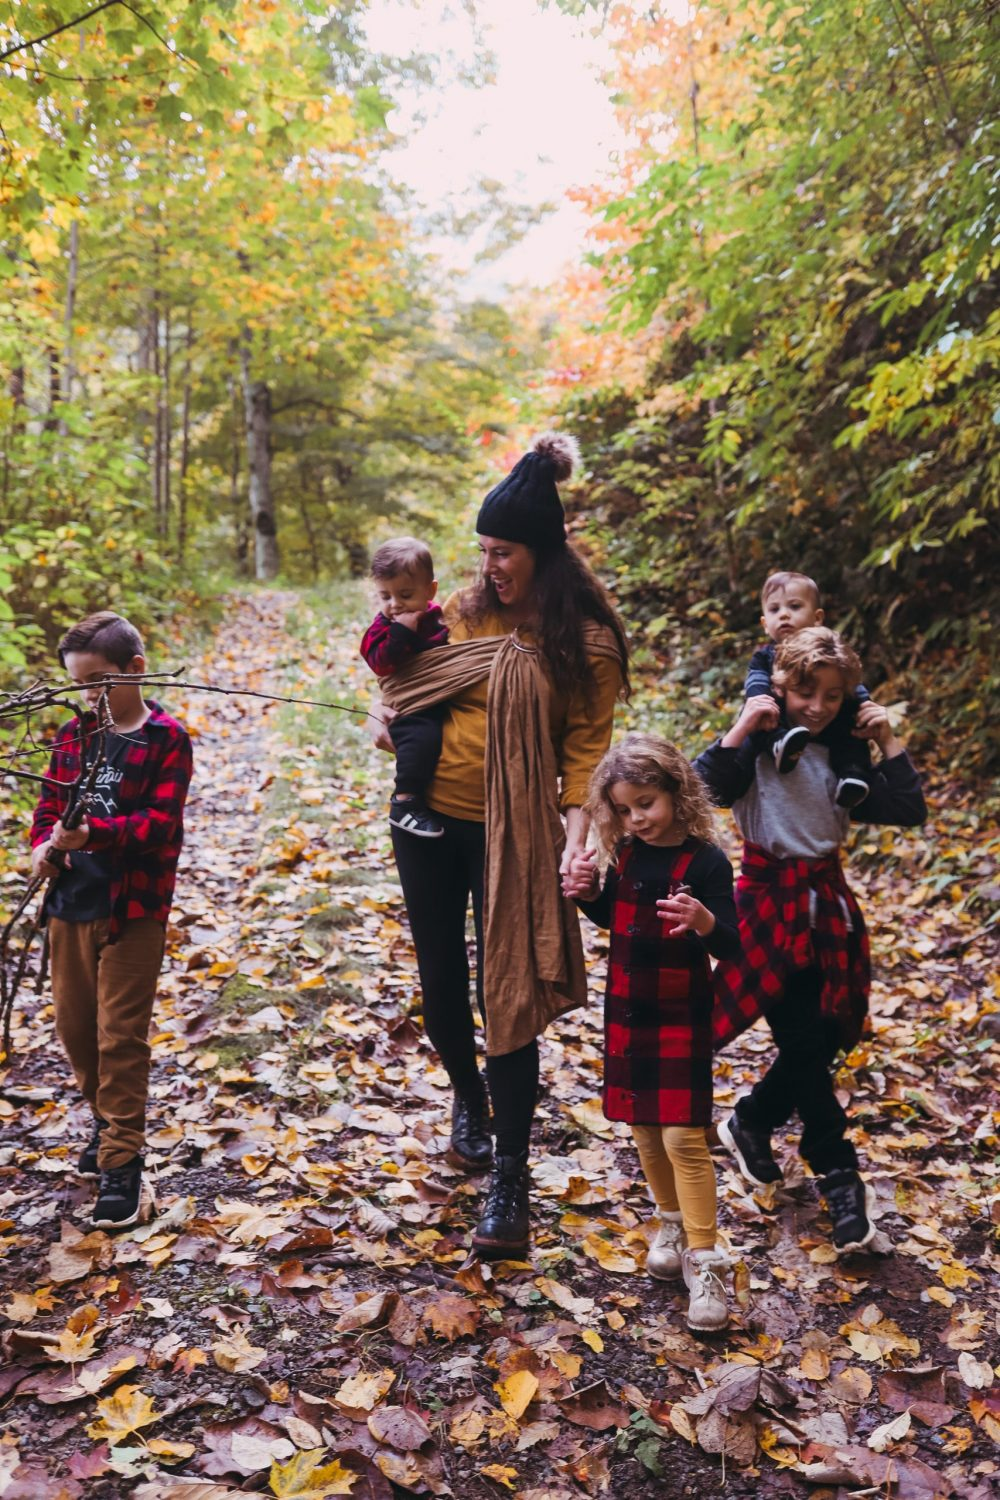 Road Trip Packing Tips by popular Florida travel blog, Fresh Mommy Blog: image of a mom and her young kids standing on a path surrounded by trees and covered with fallen yellow leaves.